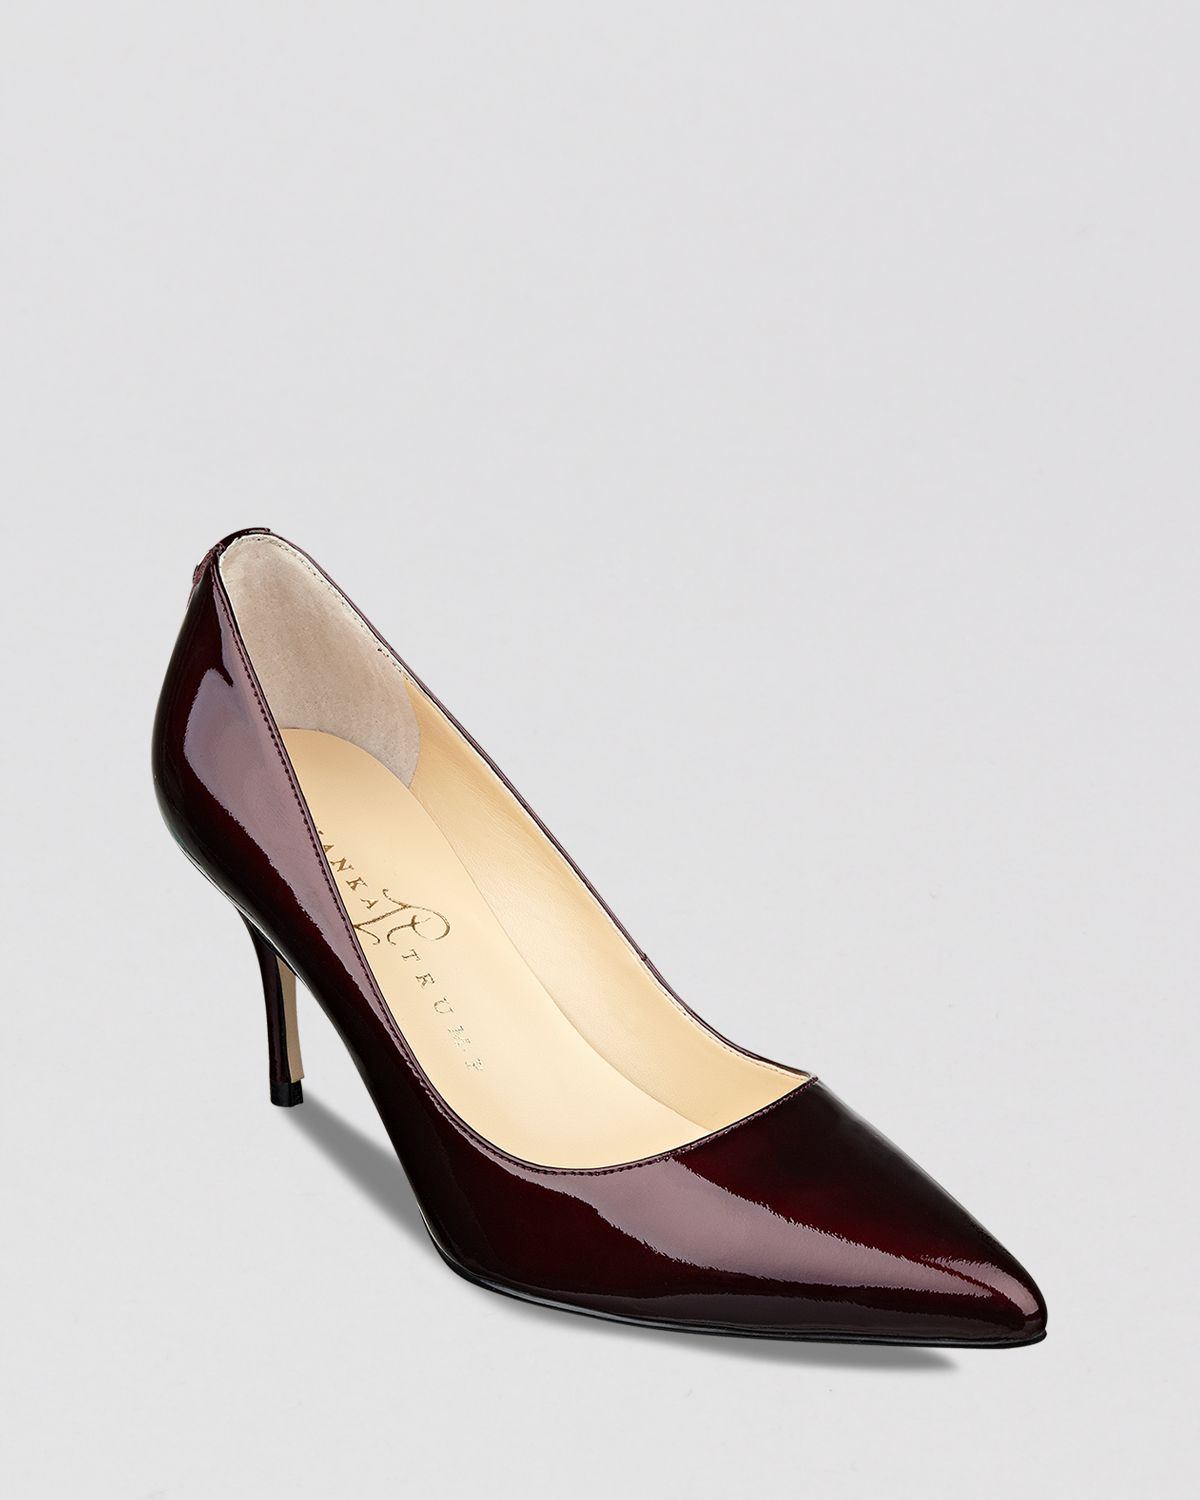 a1880cb1744 Ivanka Trump Pointed Toe Pumps - Tirra in Red - Lyst